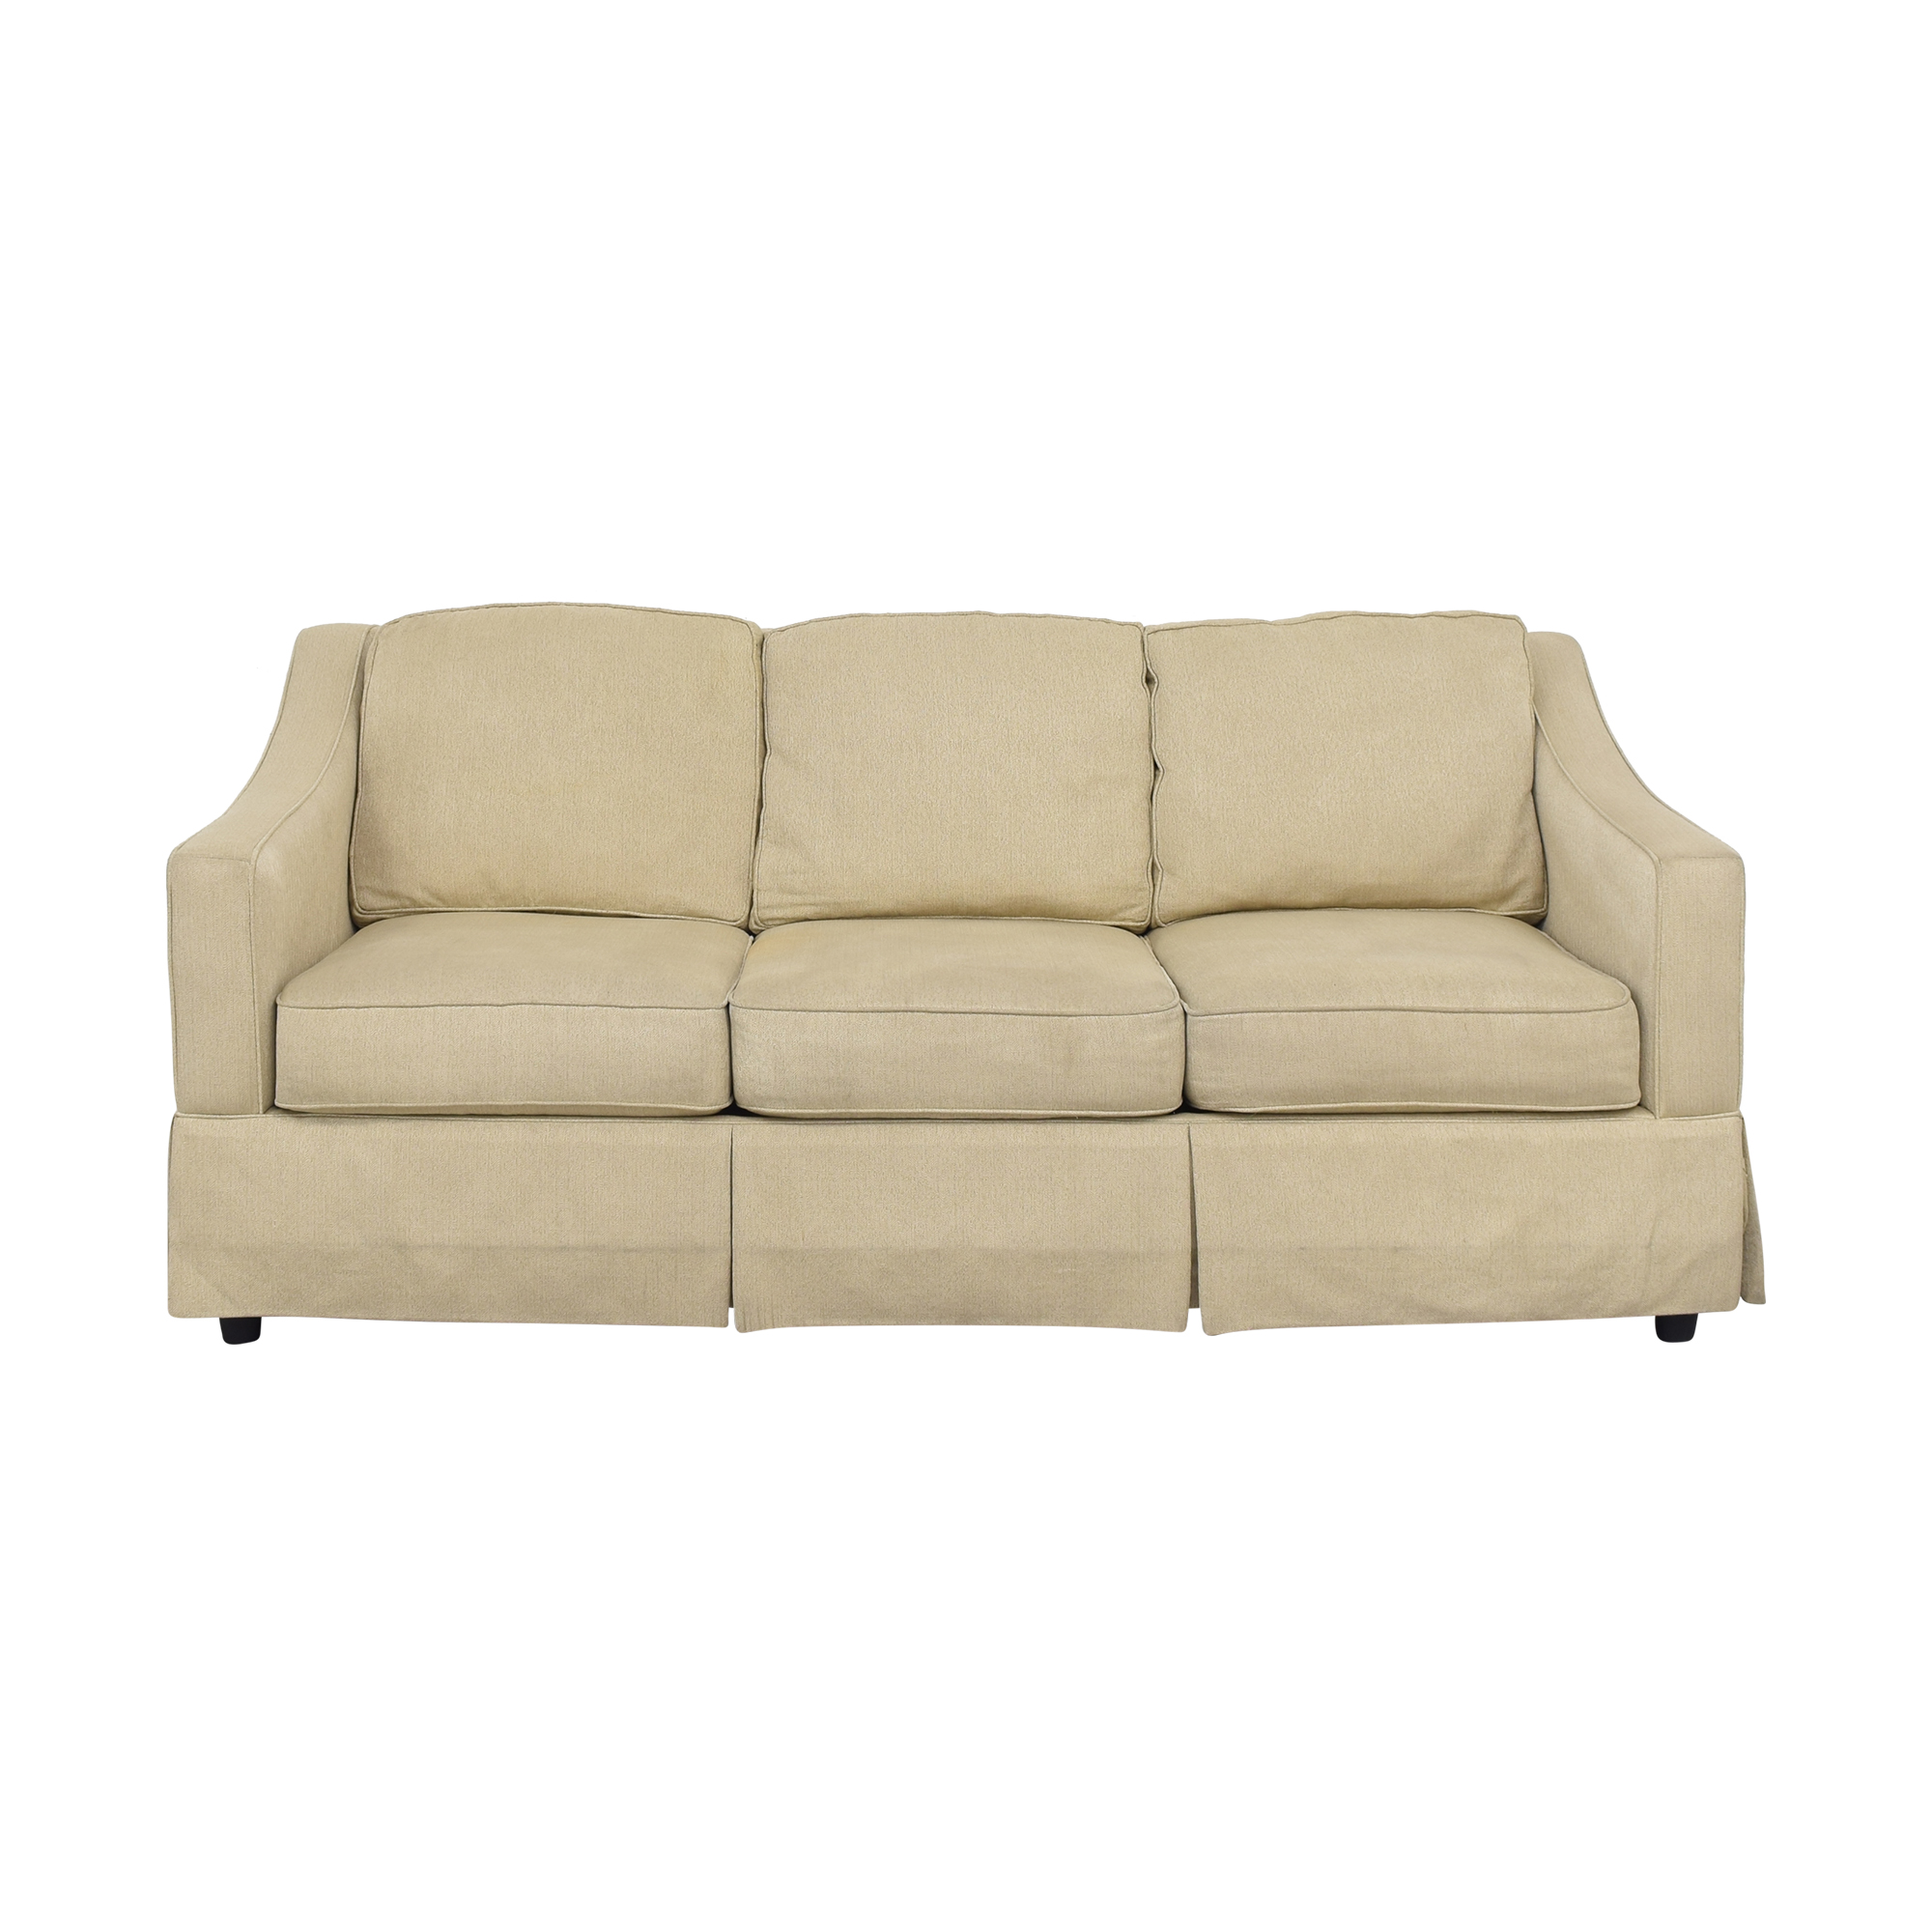 Bauhaus Furniture Bloomingdale's Bauhaus Sloped Arm Sofa dimensions